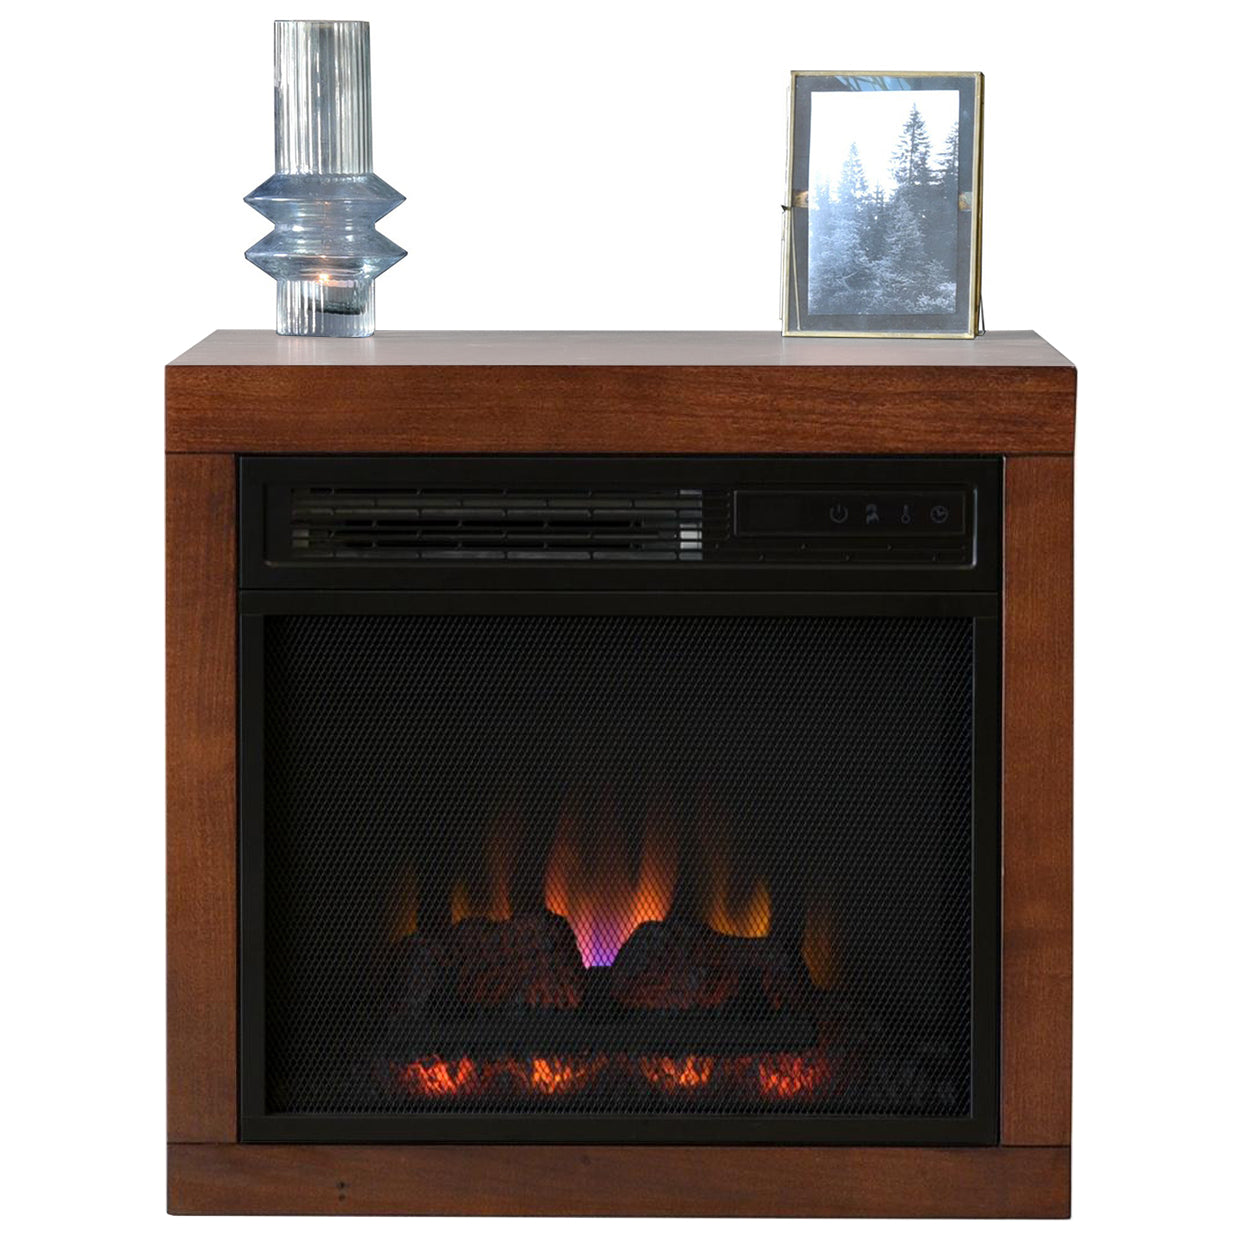 Wall Mount Floating Fireplace - ECO GEO Mocha